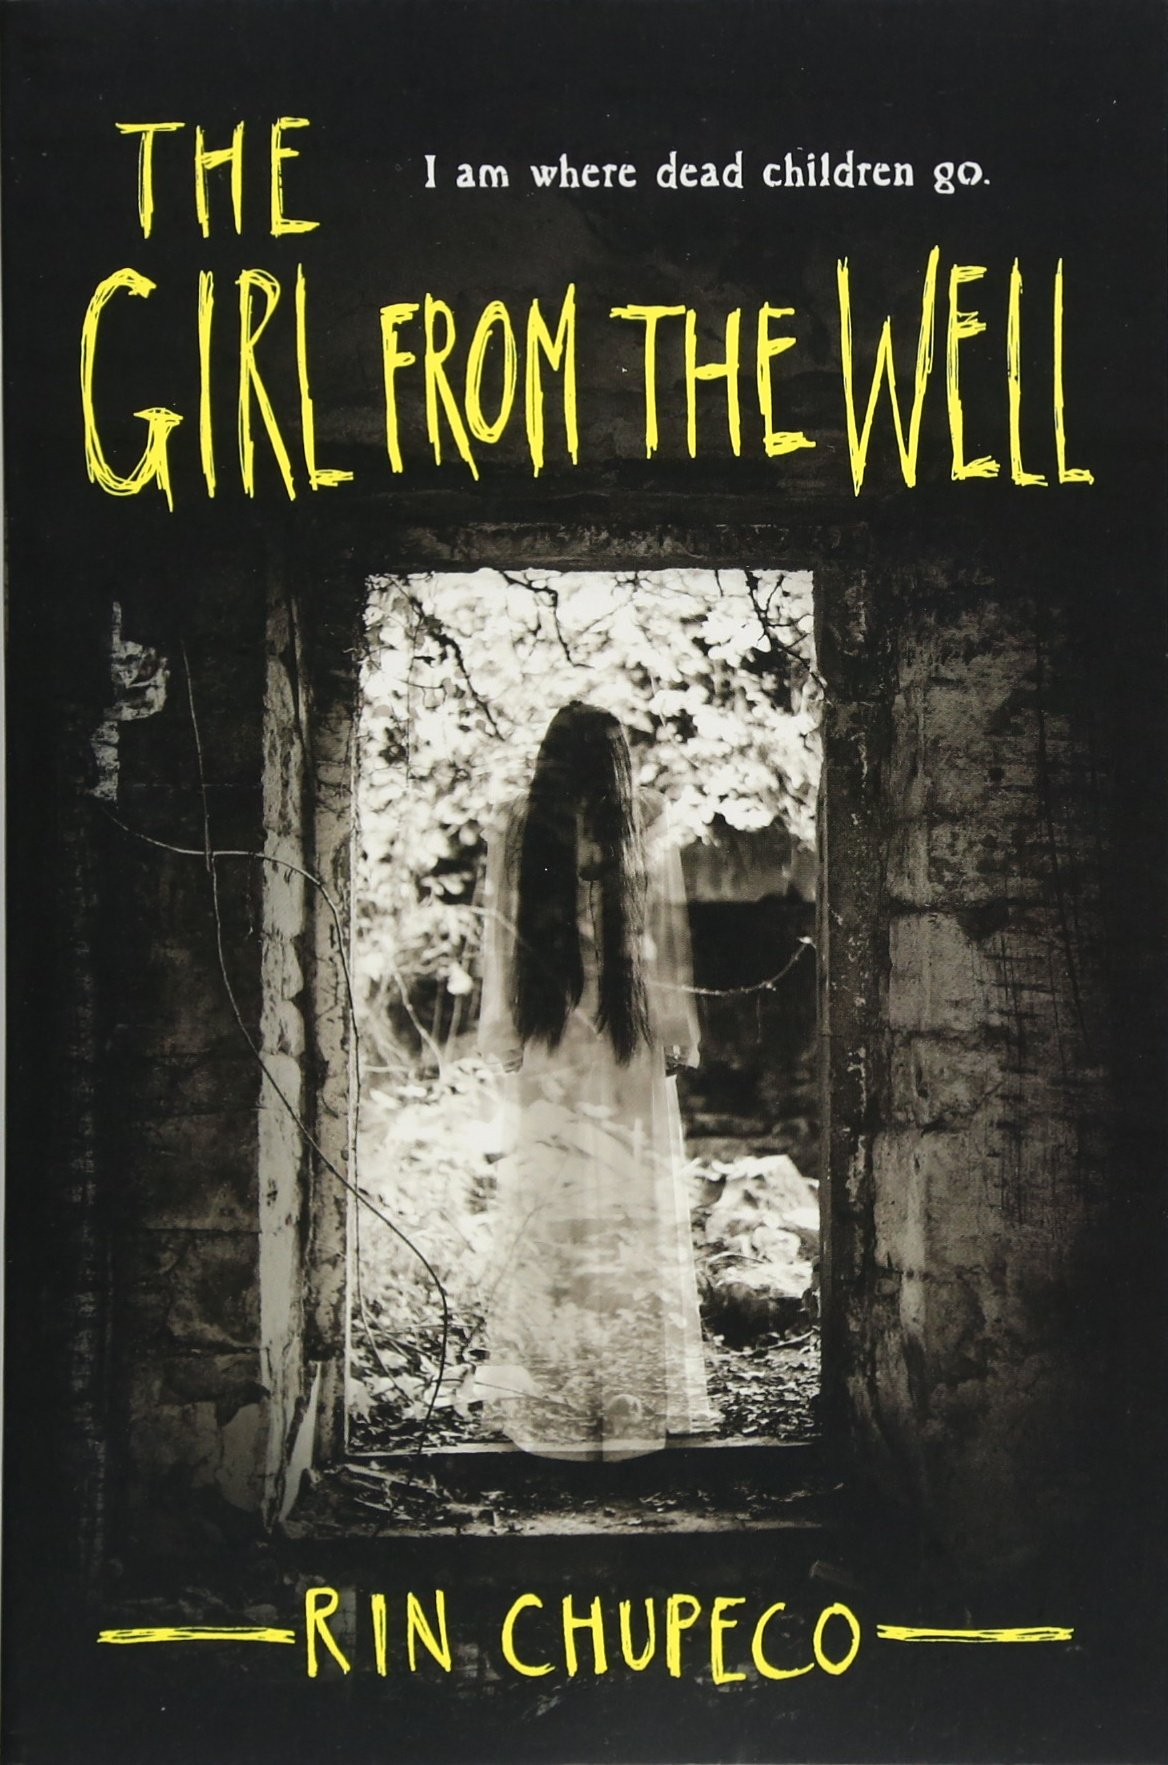 Amazon.com: The Girl from the Well (0760789249730): Chupeco, Rin ...